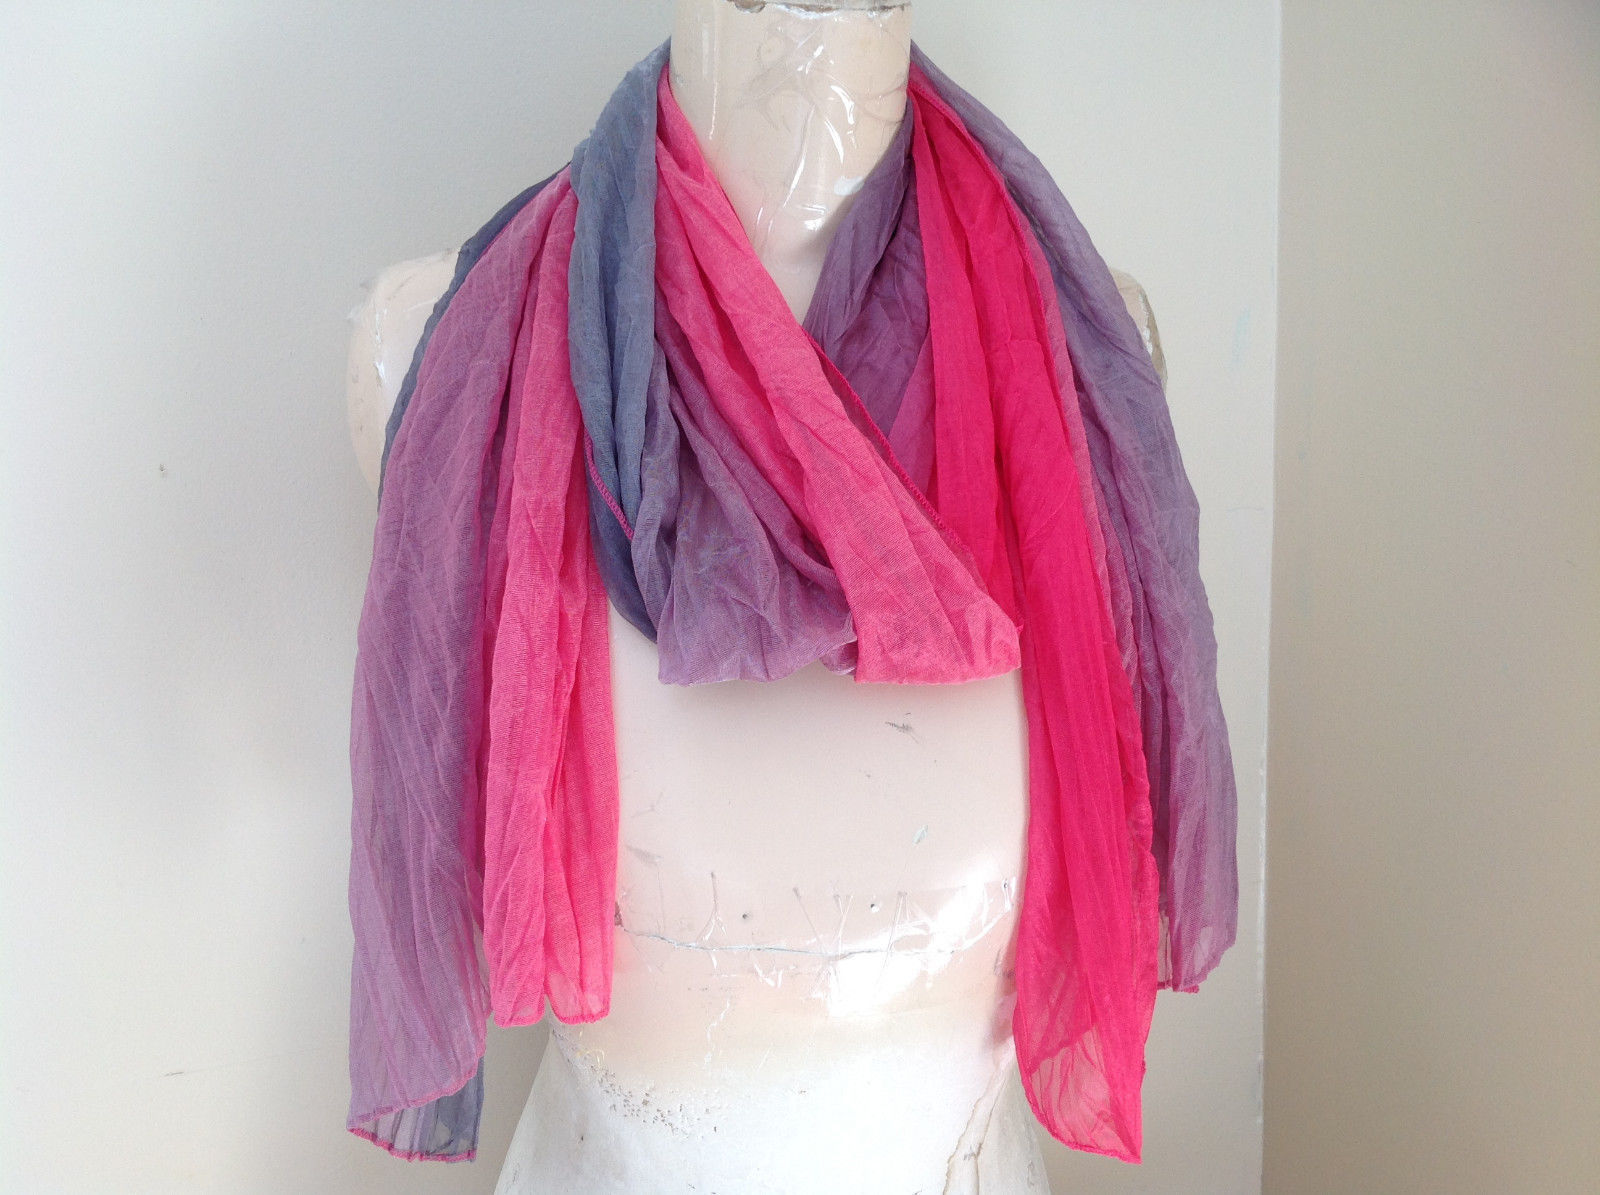 Pink Gray Watercolor Scrunched Scarf 66 Inches Long 26 Inches Wide